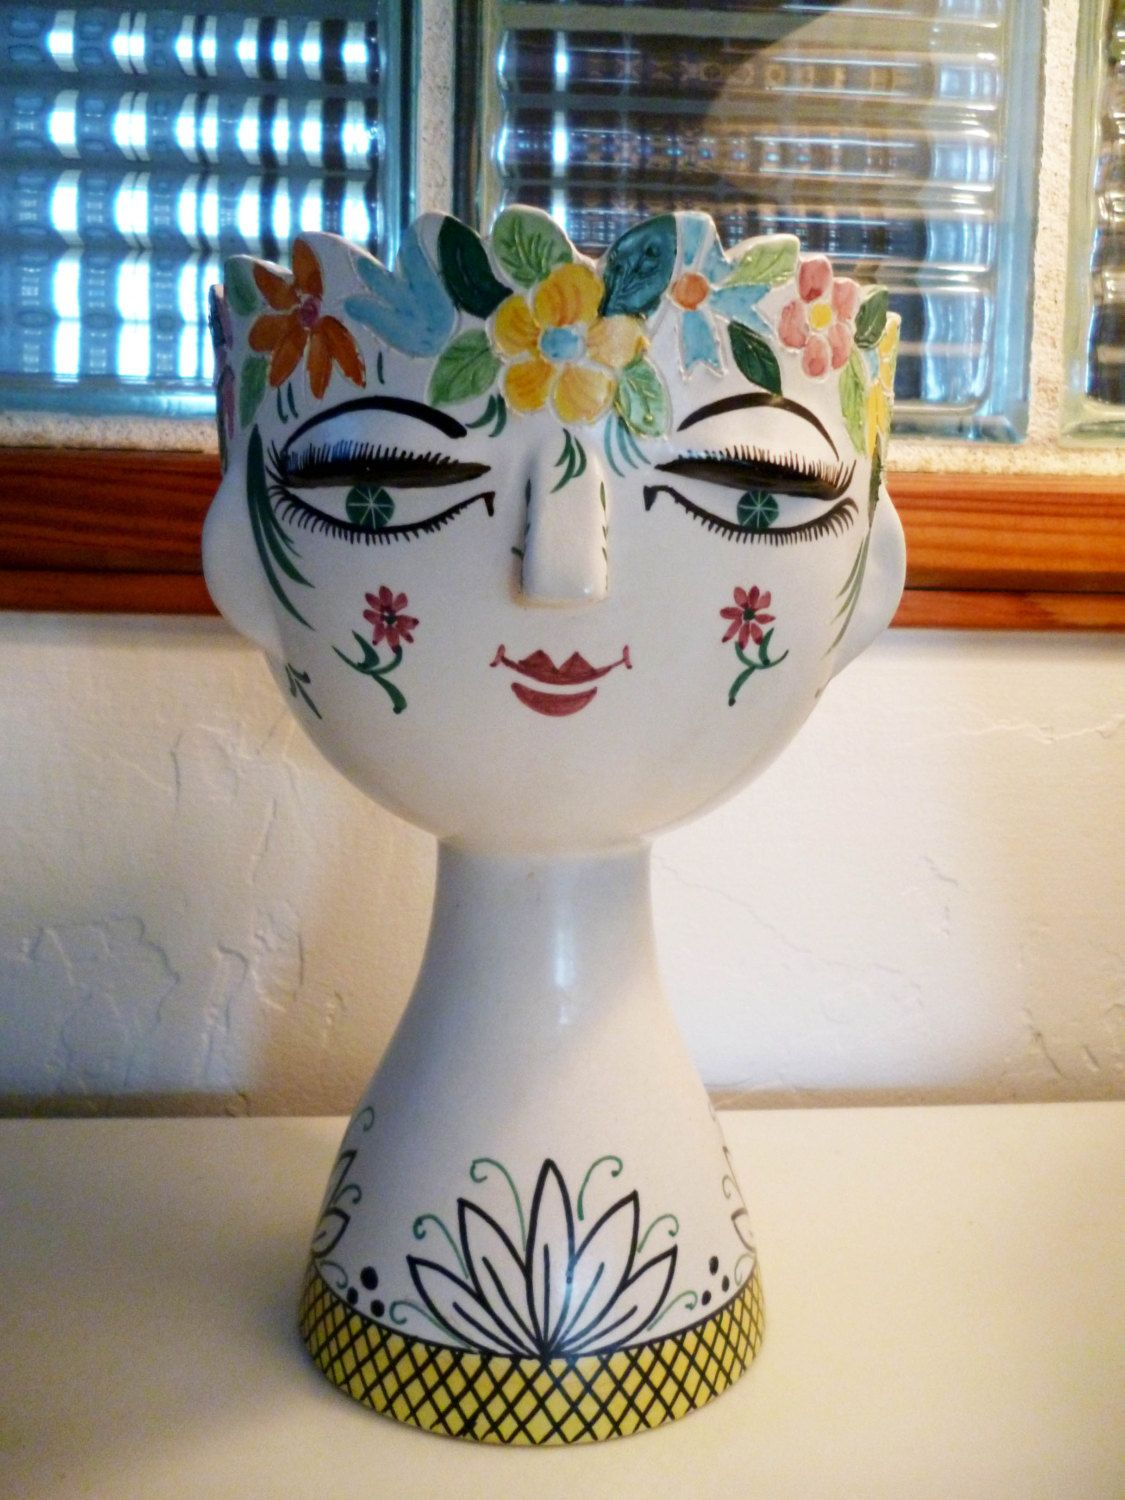 Reserved for mary vintage mid century modern italy statue face reserved for mary vintage mid century modern italy statue face woman meiselman imports italian head vase smile yellow pink wow reviewsmspy